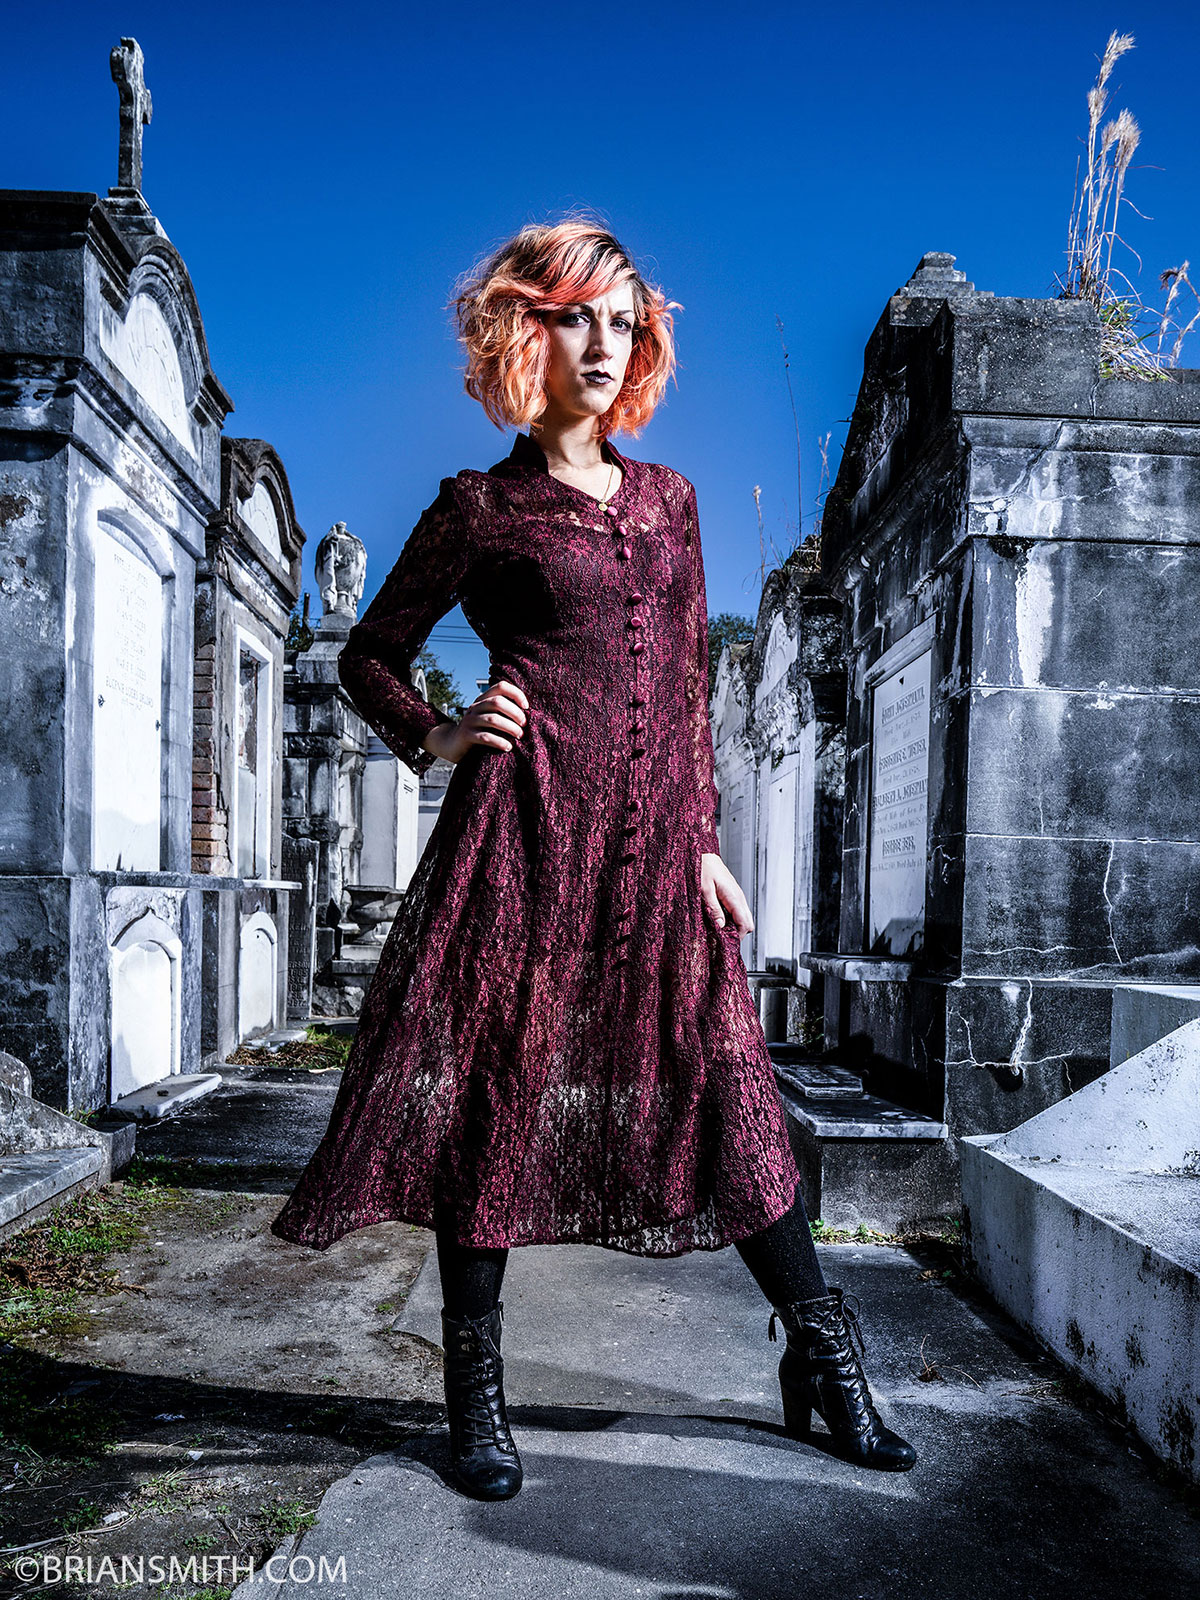 Lafayette Cemetery No. 1, New Orleans shot with Sony FE 24-70mm F2.8 GM lens